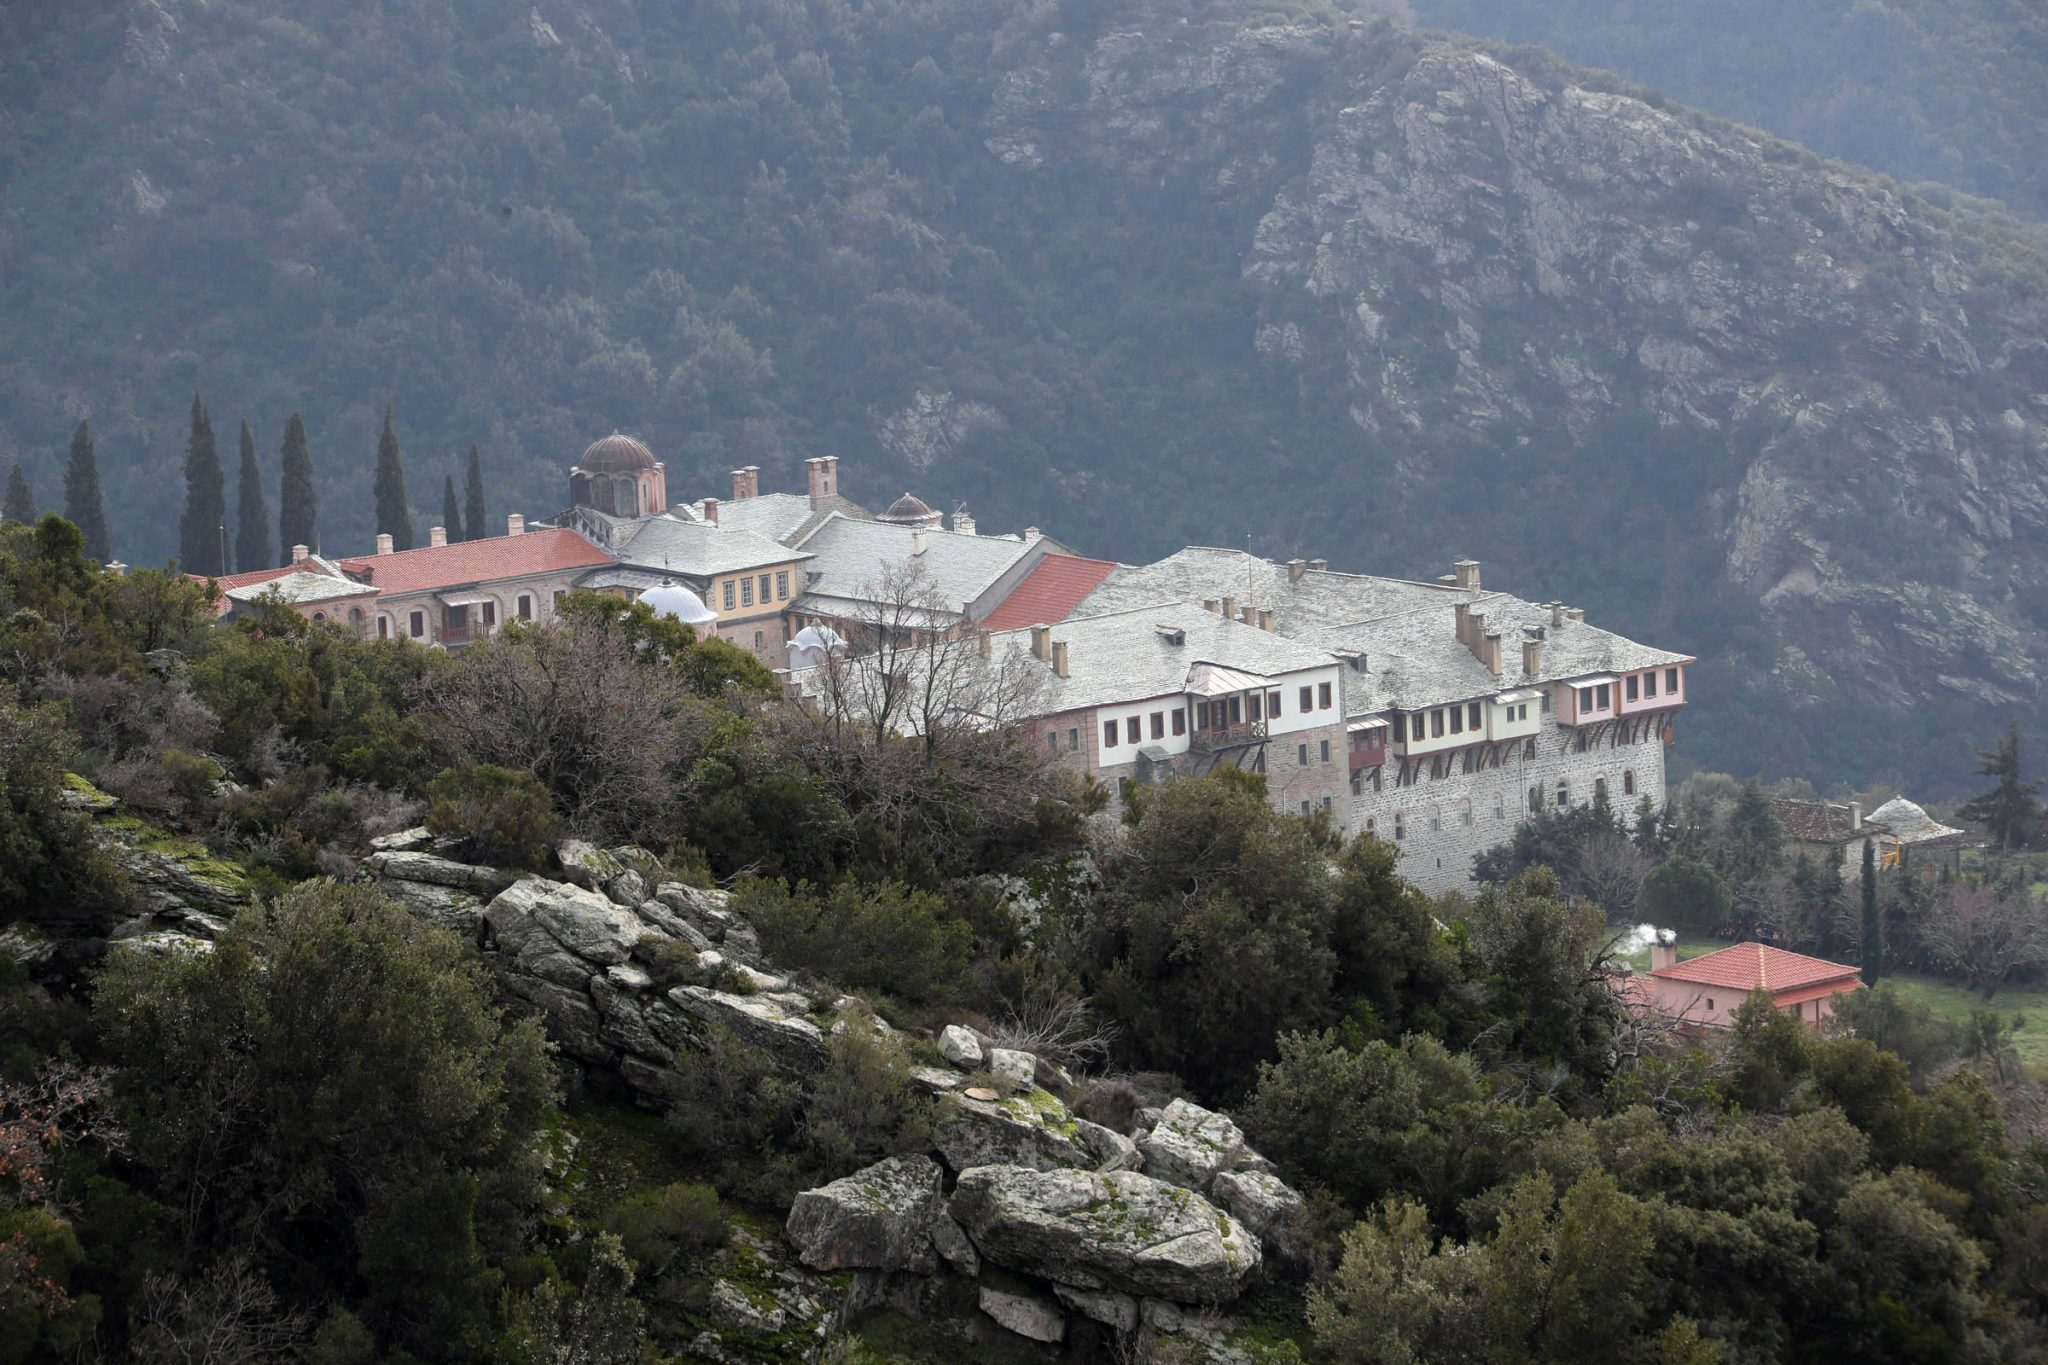 The Holy Monastery of Xeropotamou, Mount Athos